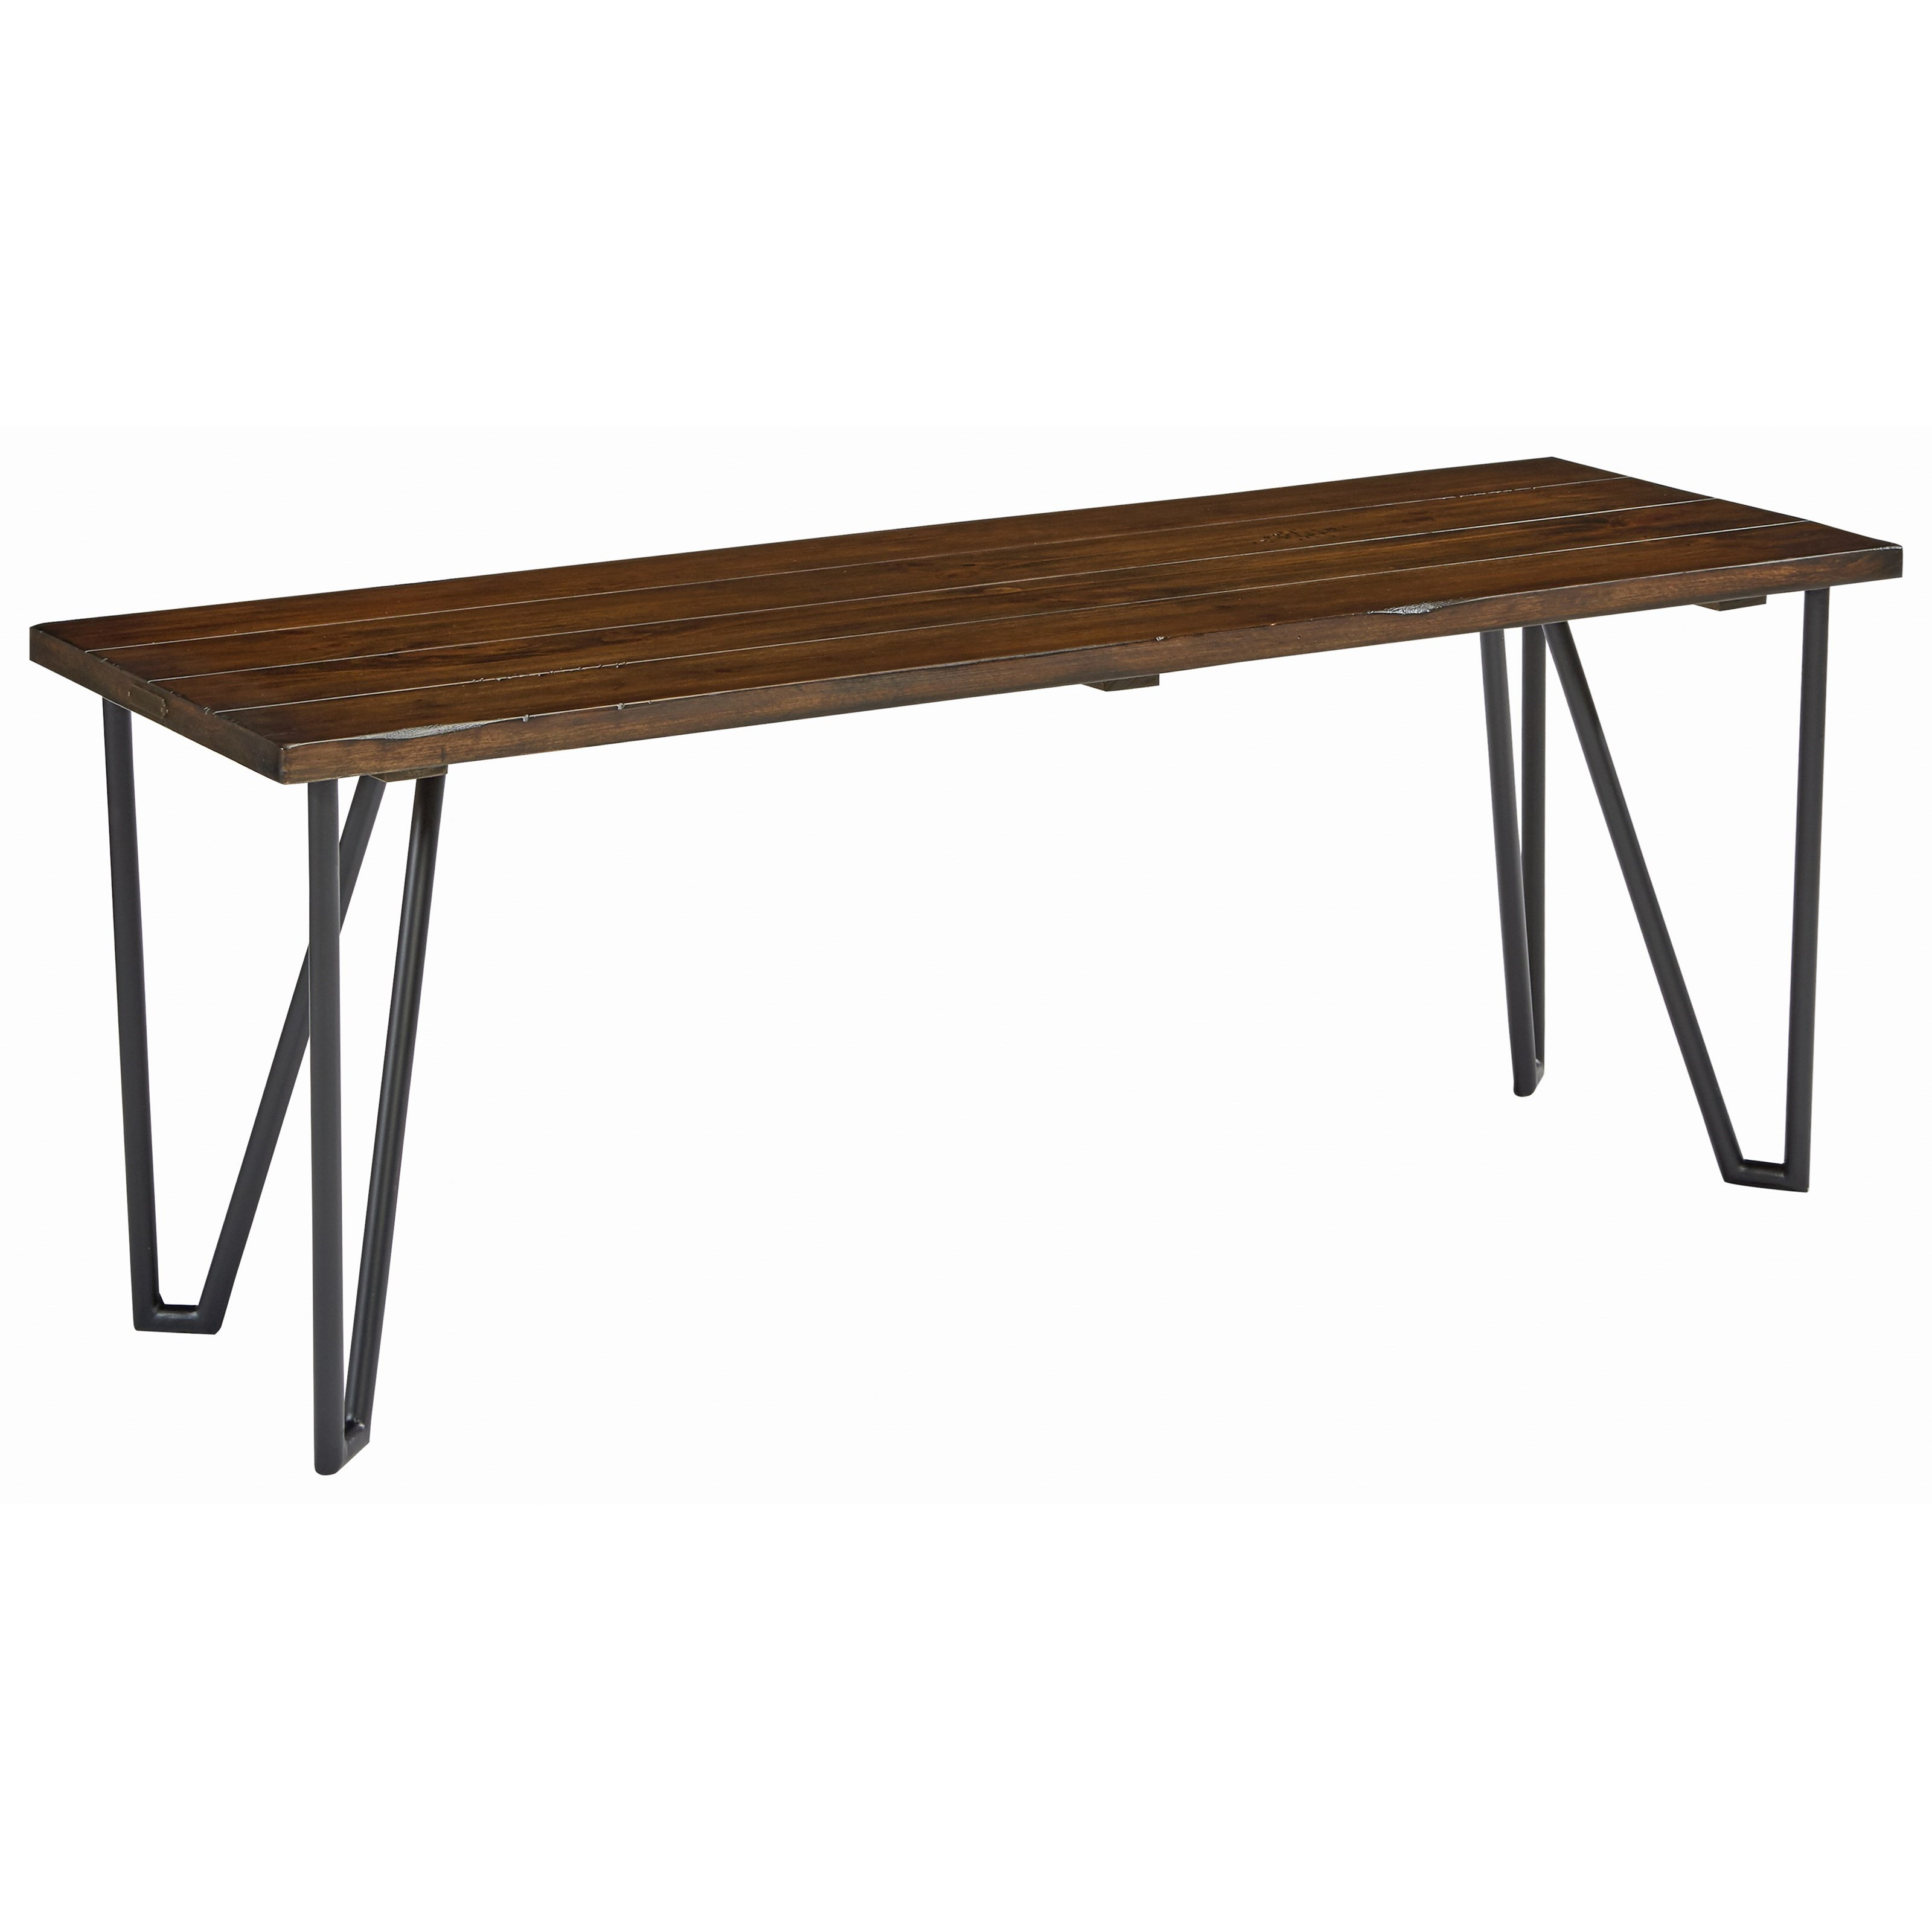 """Magnolia Home by Joanna Gaines Boho 50"""" Hairpin Bench - Item Number: 5010149N"""